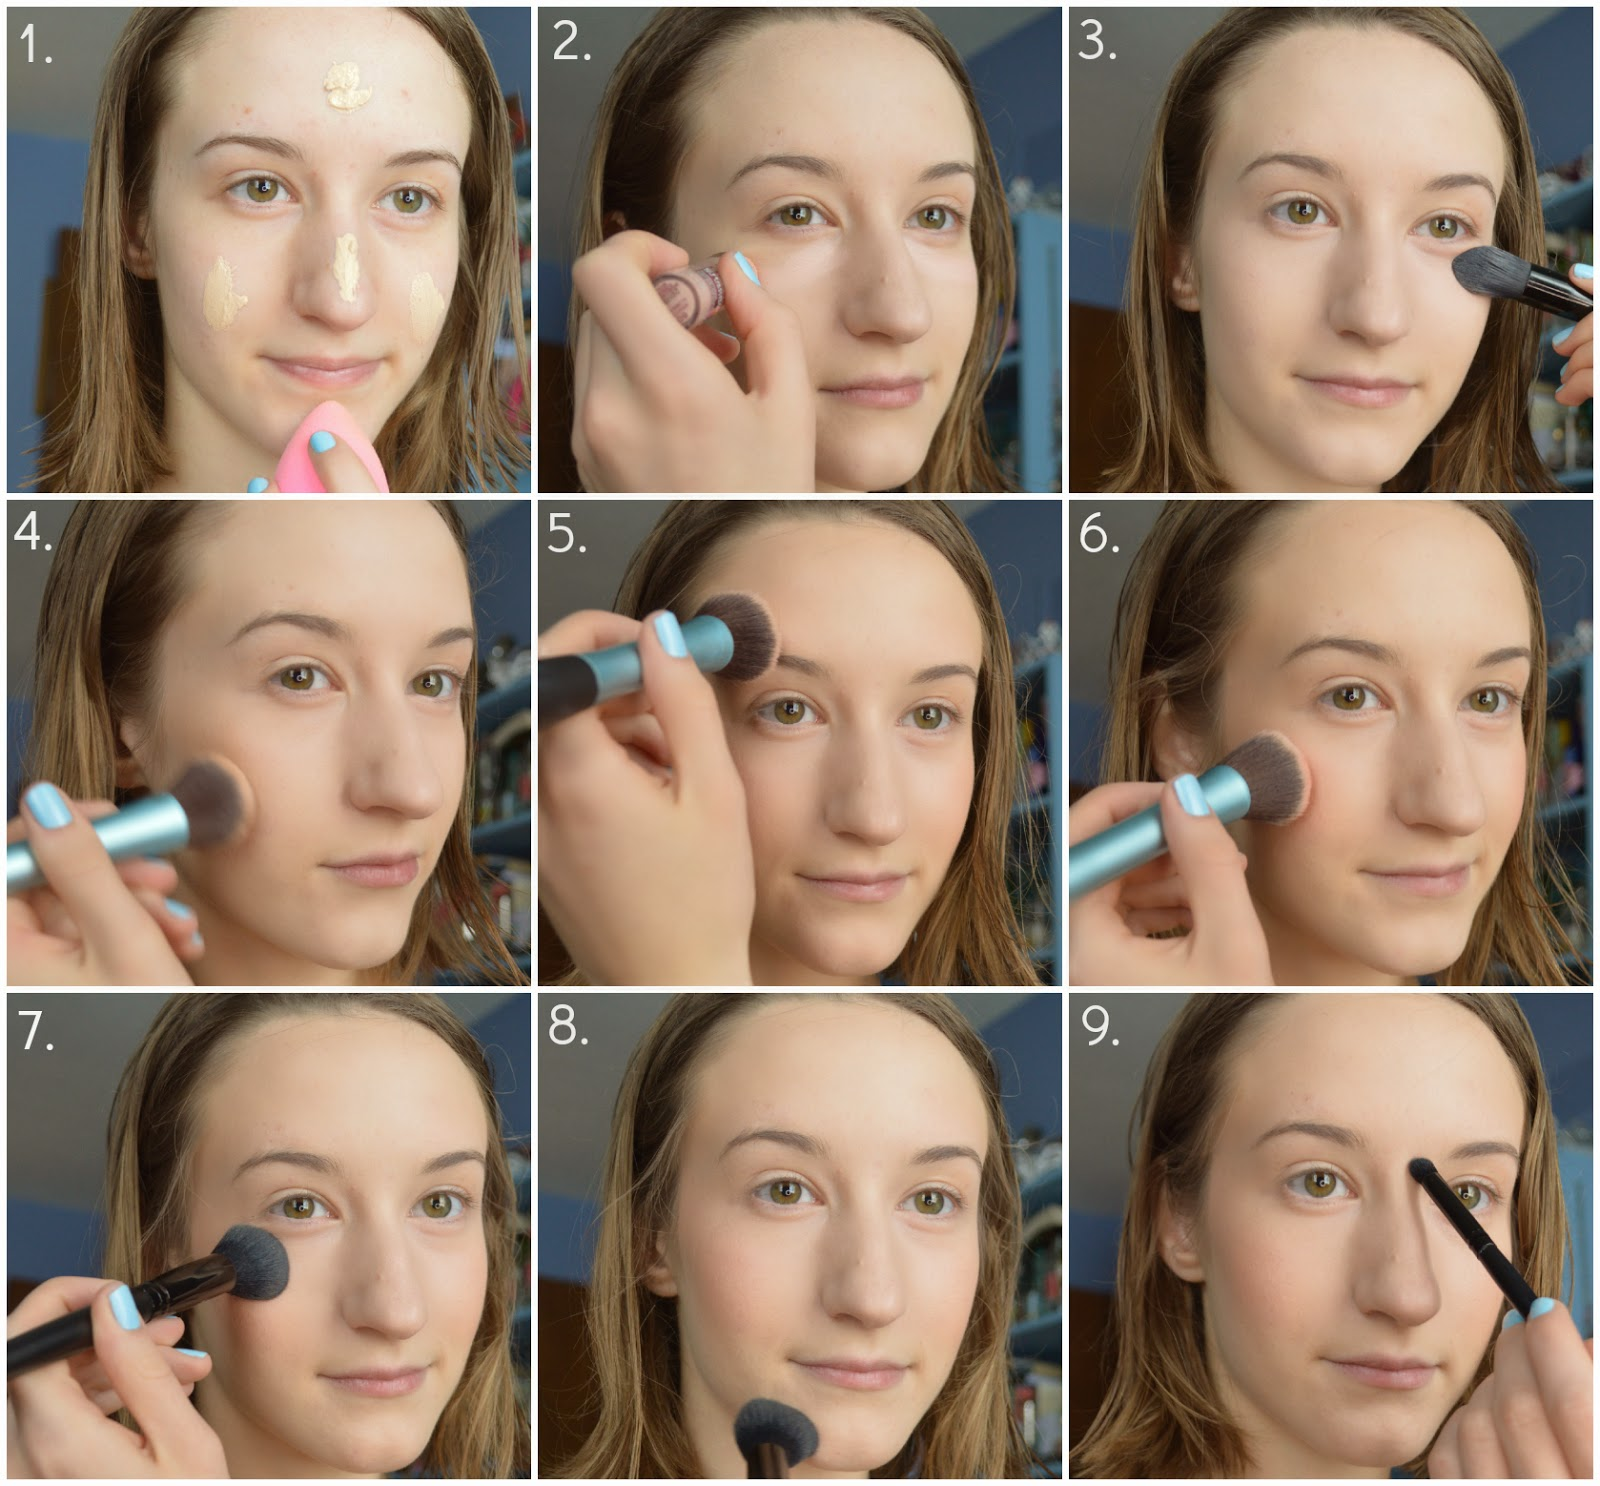 How to Apply Makeup to Look More Masculine pictures